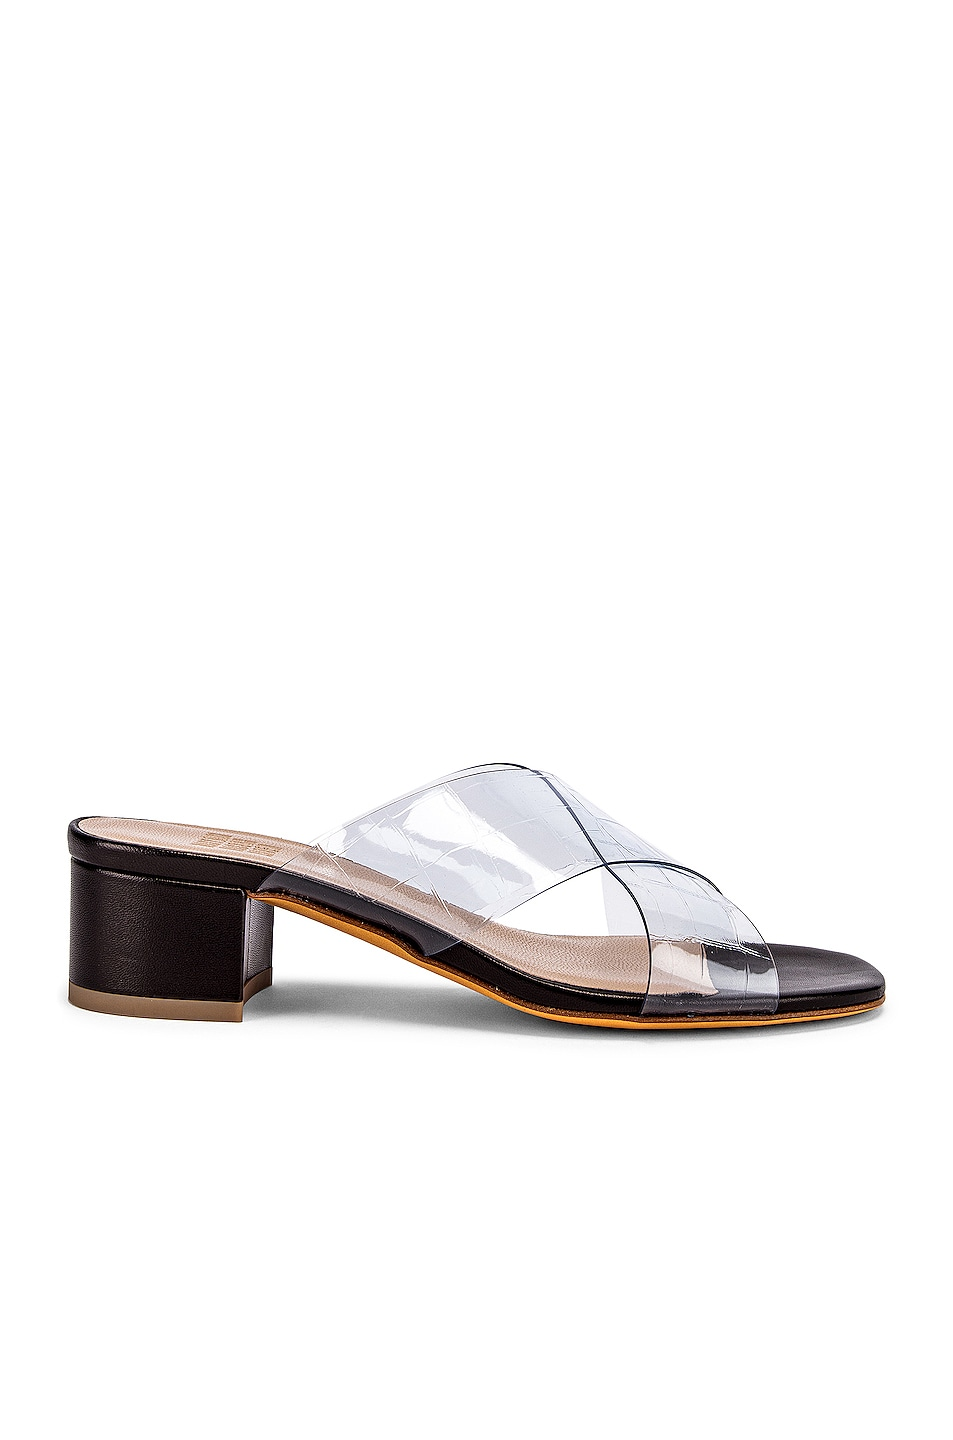 Image 1 of Maryam Nassir Zadeh Lauren Slide in Black & Clear